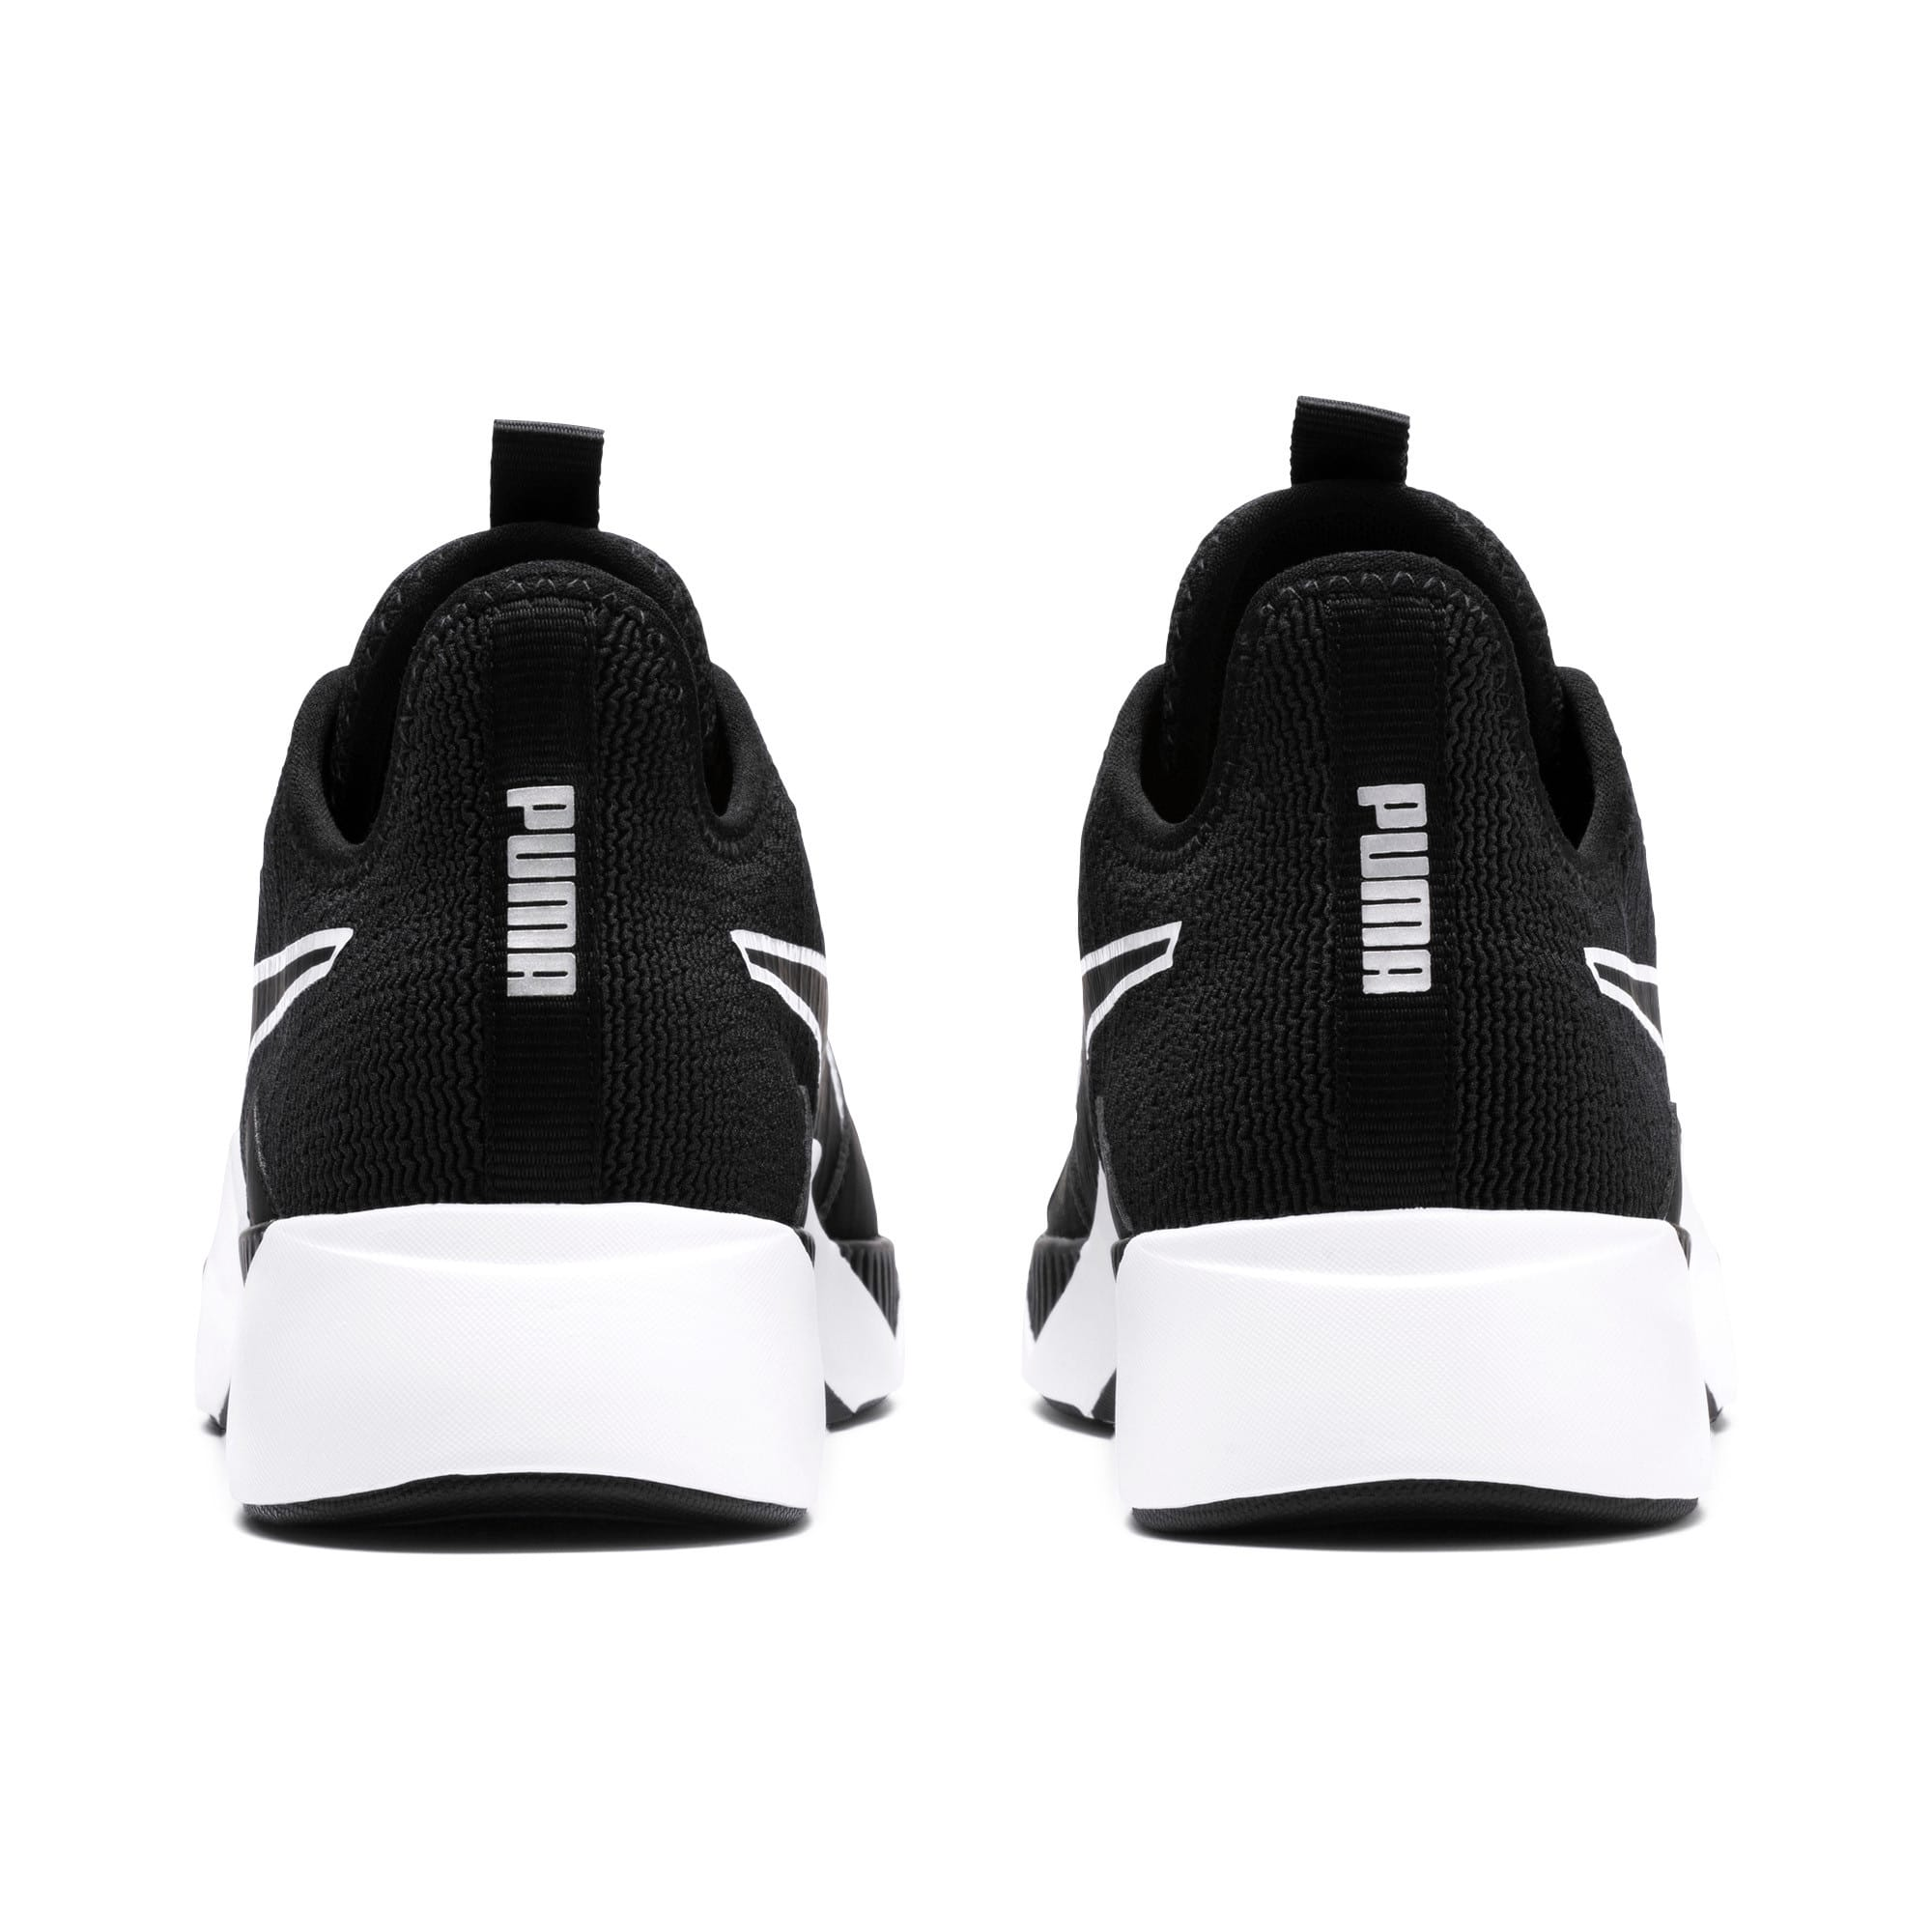 Thumbnail 4 of The Black Incite FS Wave Wn's, Puma Black-Puma White, medium-IND